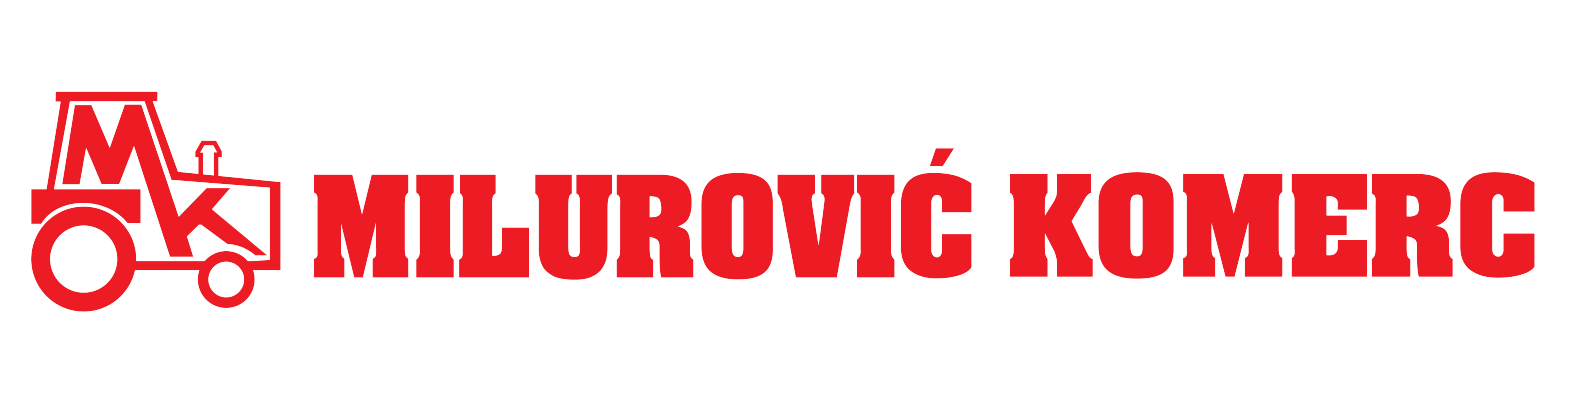 Company logo for 'Milurovic Komerc'.